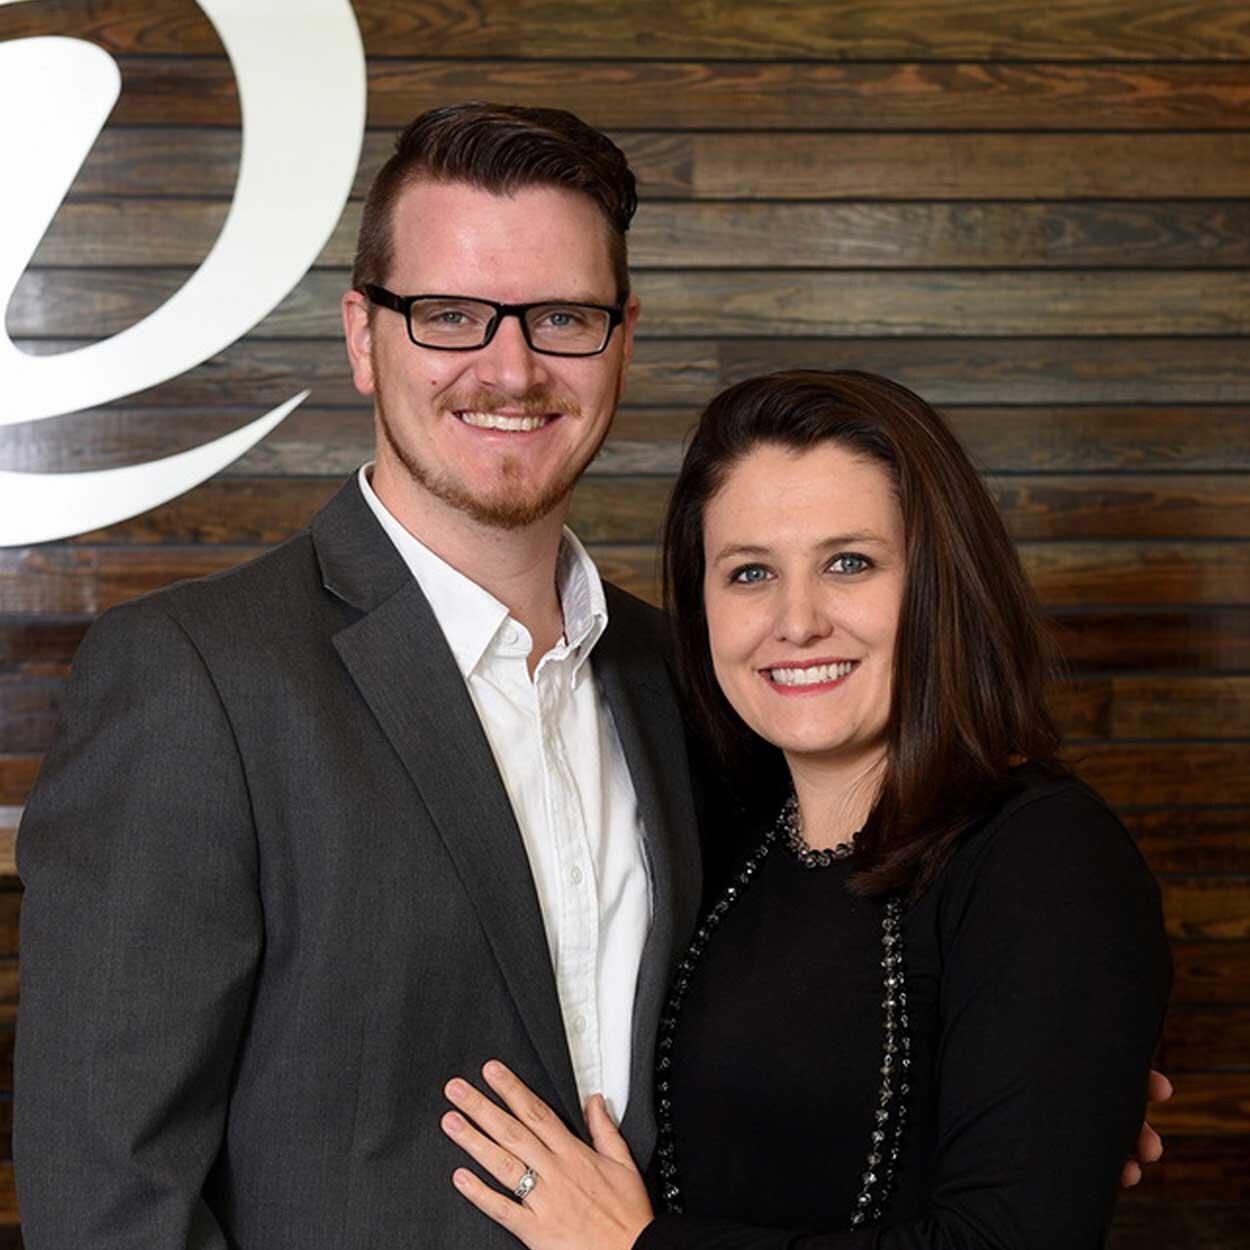 Pastor Kyle & Abby Wilson - WORSHIP PASTORKyle and his wife, Abby, have one daughter, Emma Rose. He oversees our worship team and has served on our leadership team for five years.Email Kyle